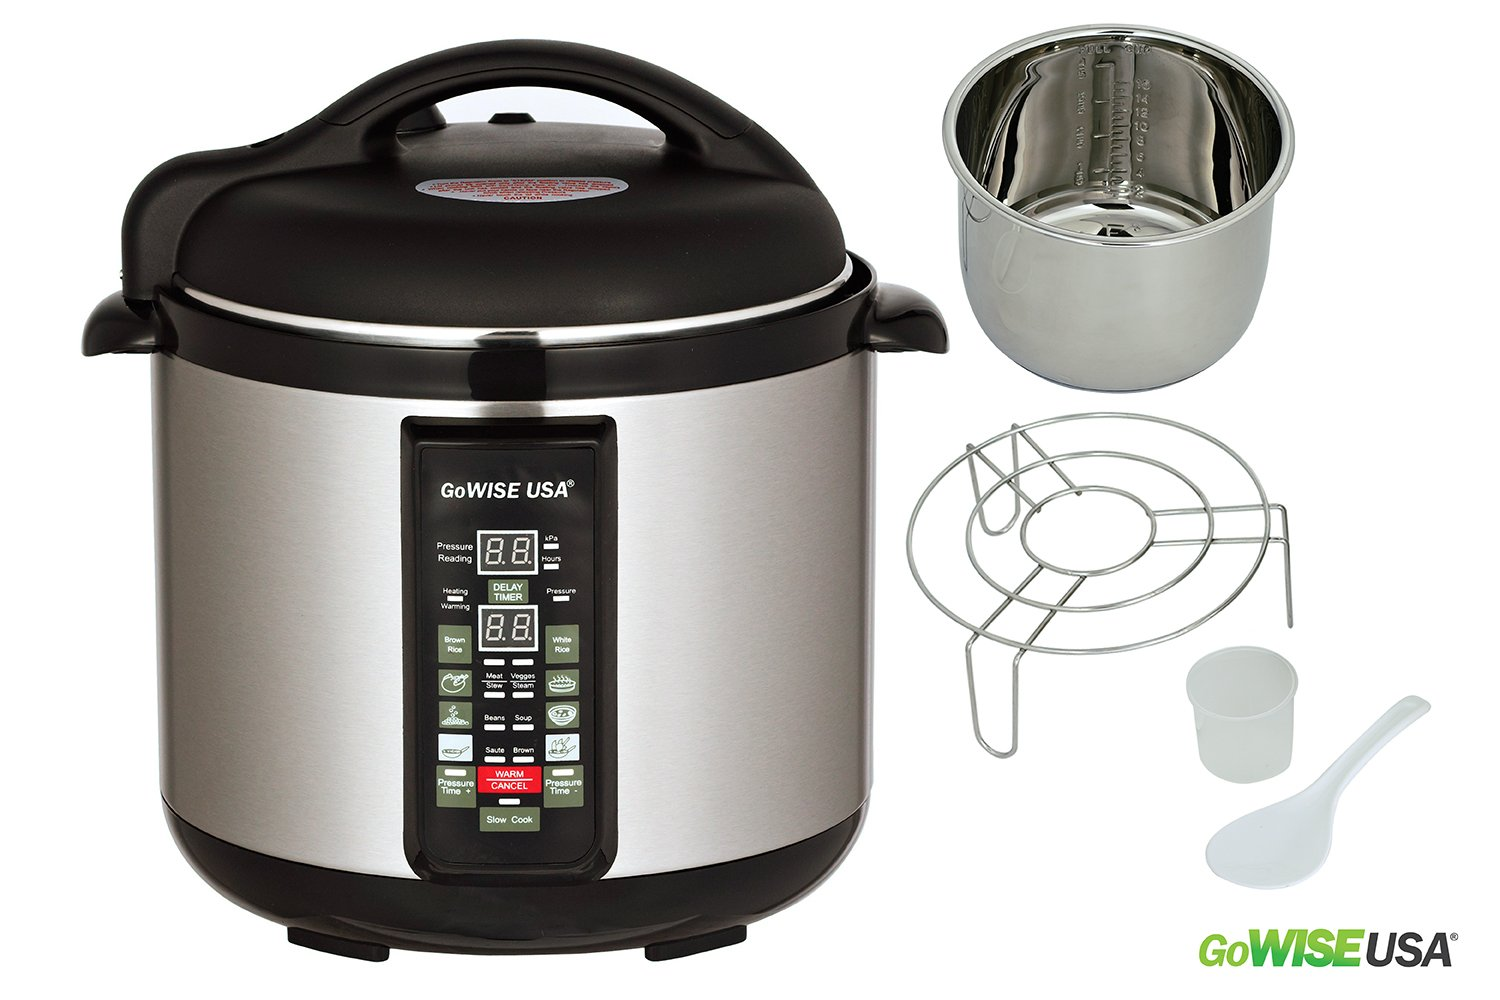 Stainless-steel Cooking Pot/ 6-in-1 Electric Pressure Cooker/Slow Cooker w/new durable regulator knob (8 QT) - 1300W